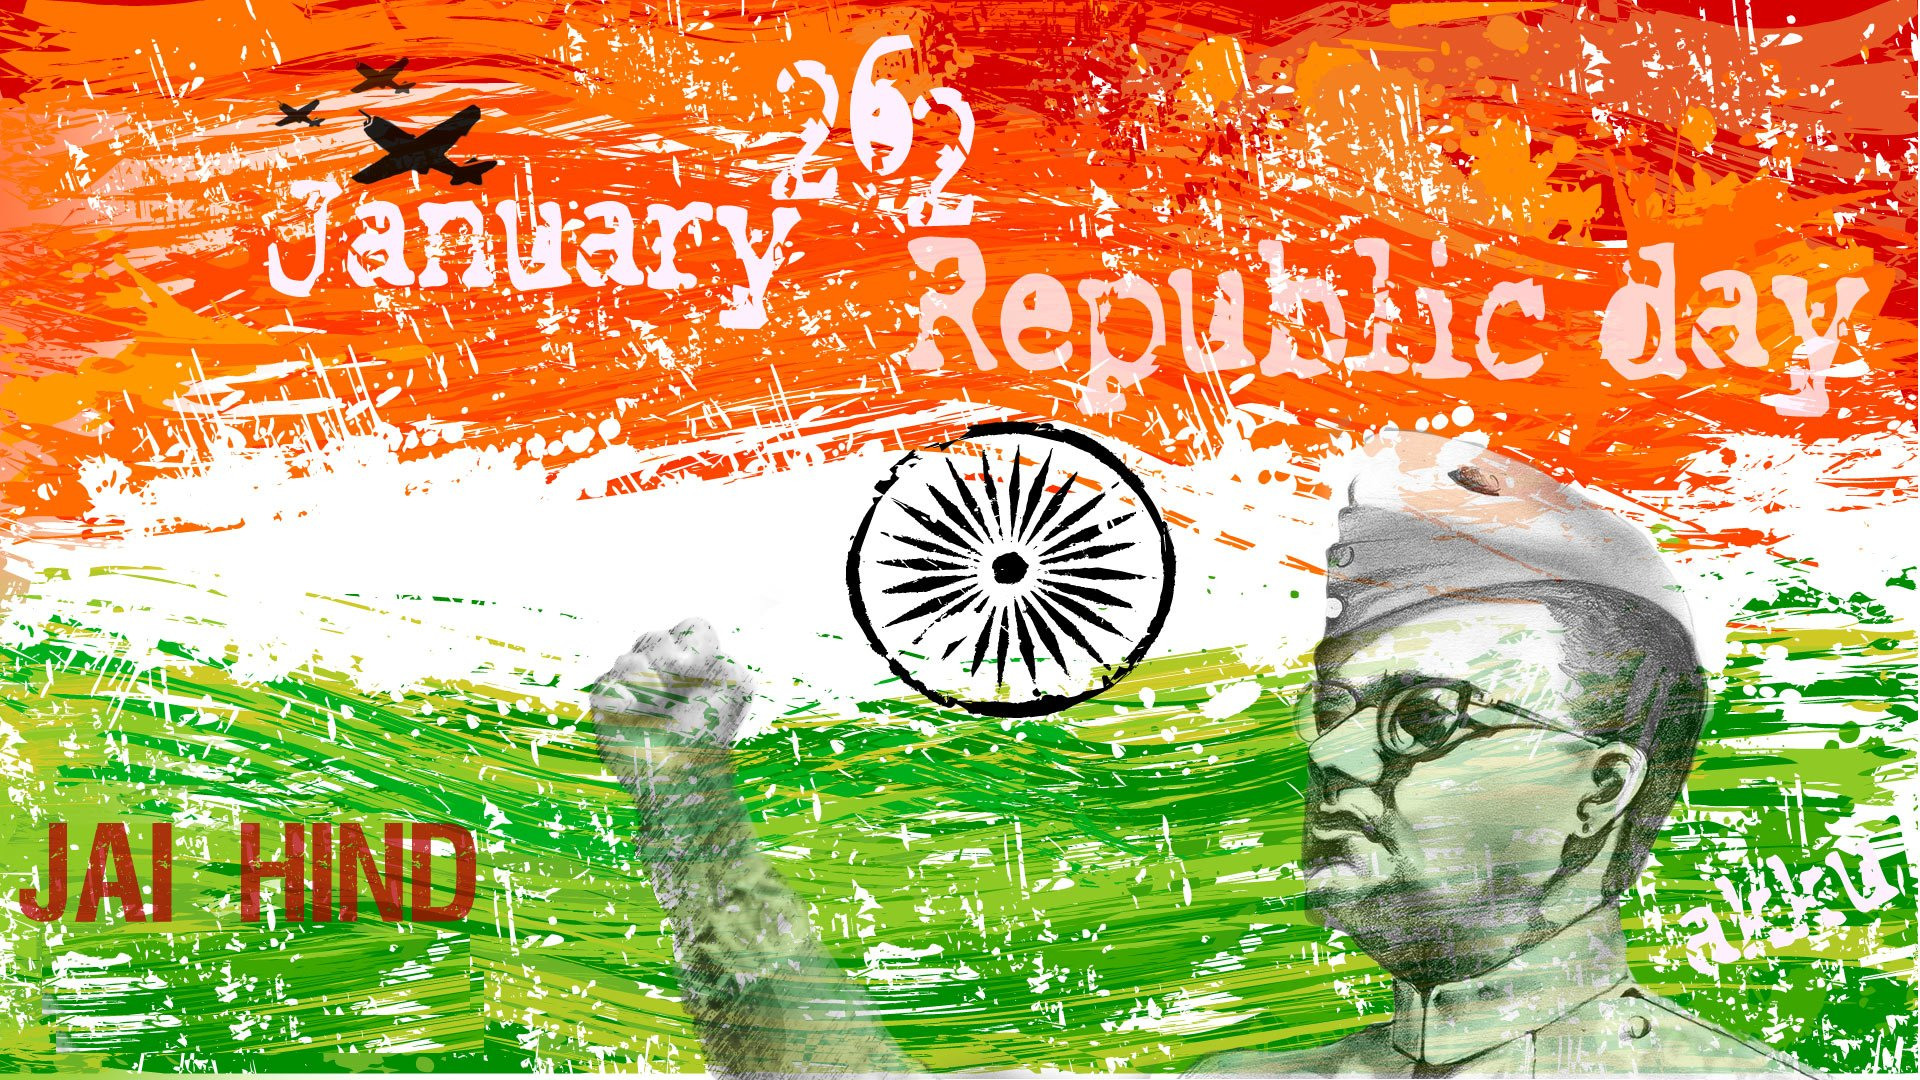 speech for republic day in hindi 26 january | republic day 2018 speech in hindi, english for teachers, students, happy republic day images, wishes, speeches.